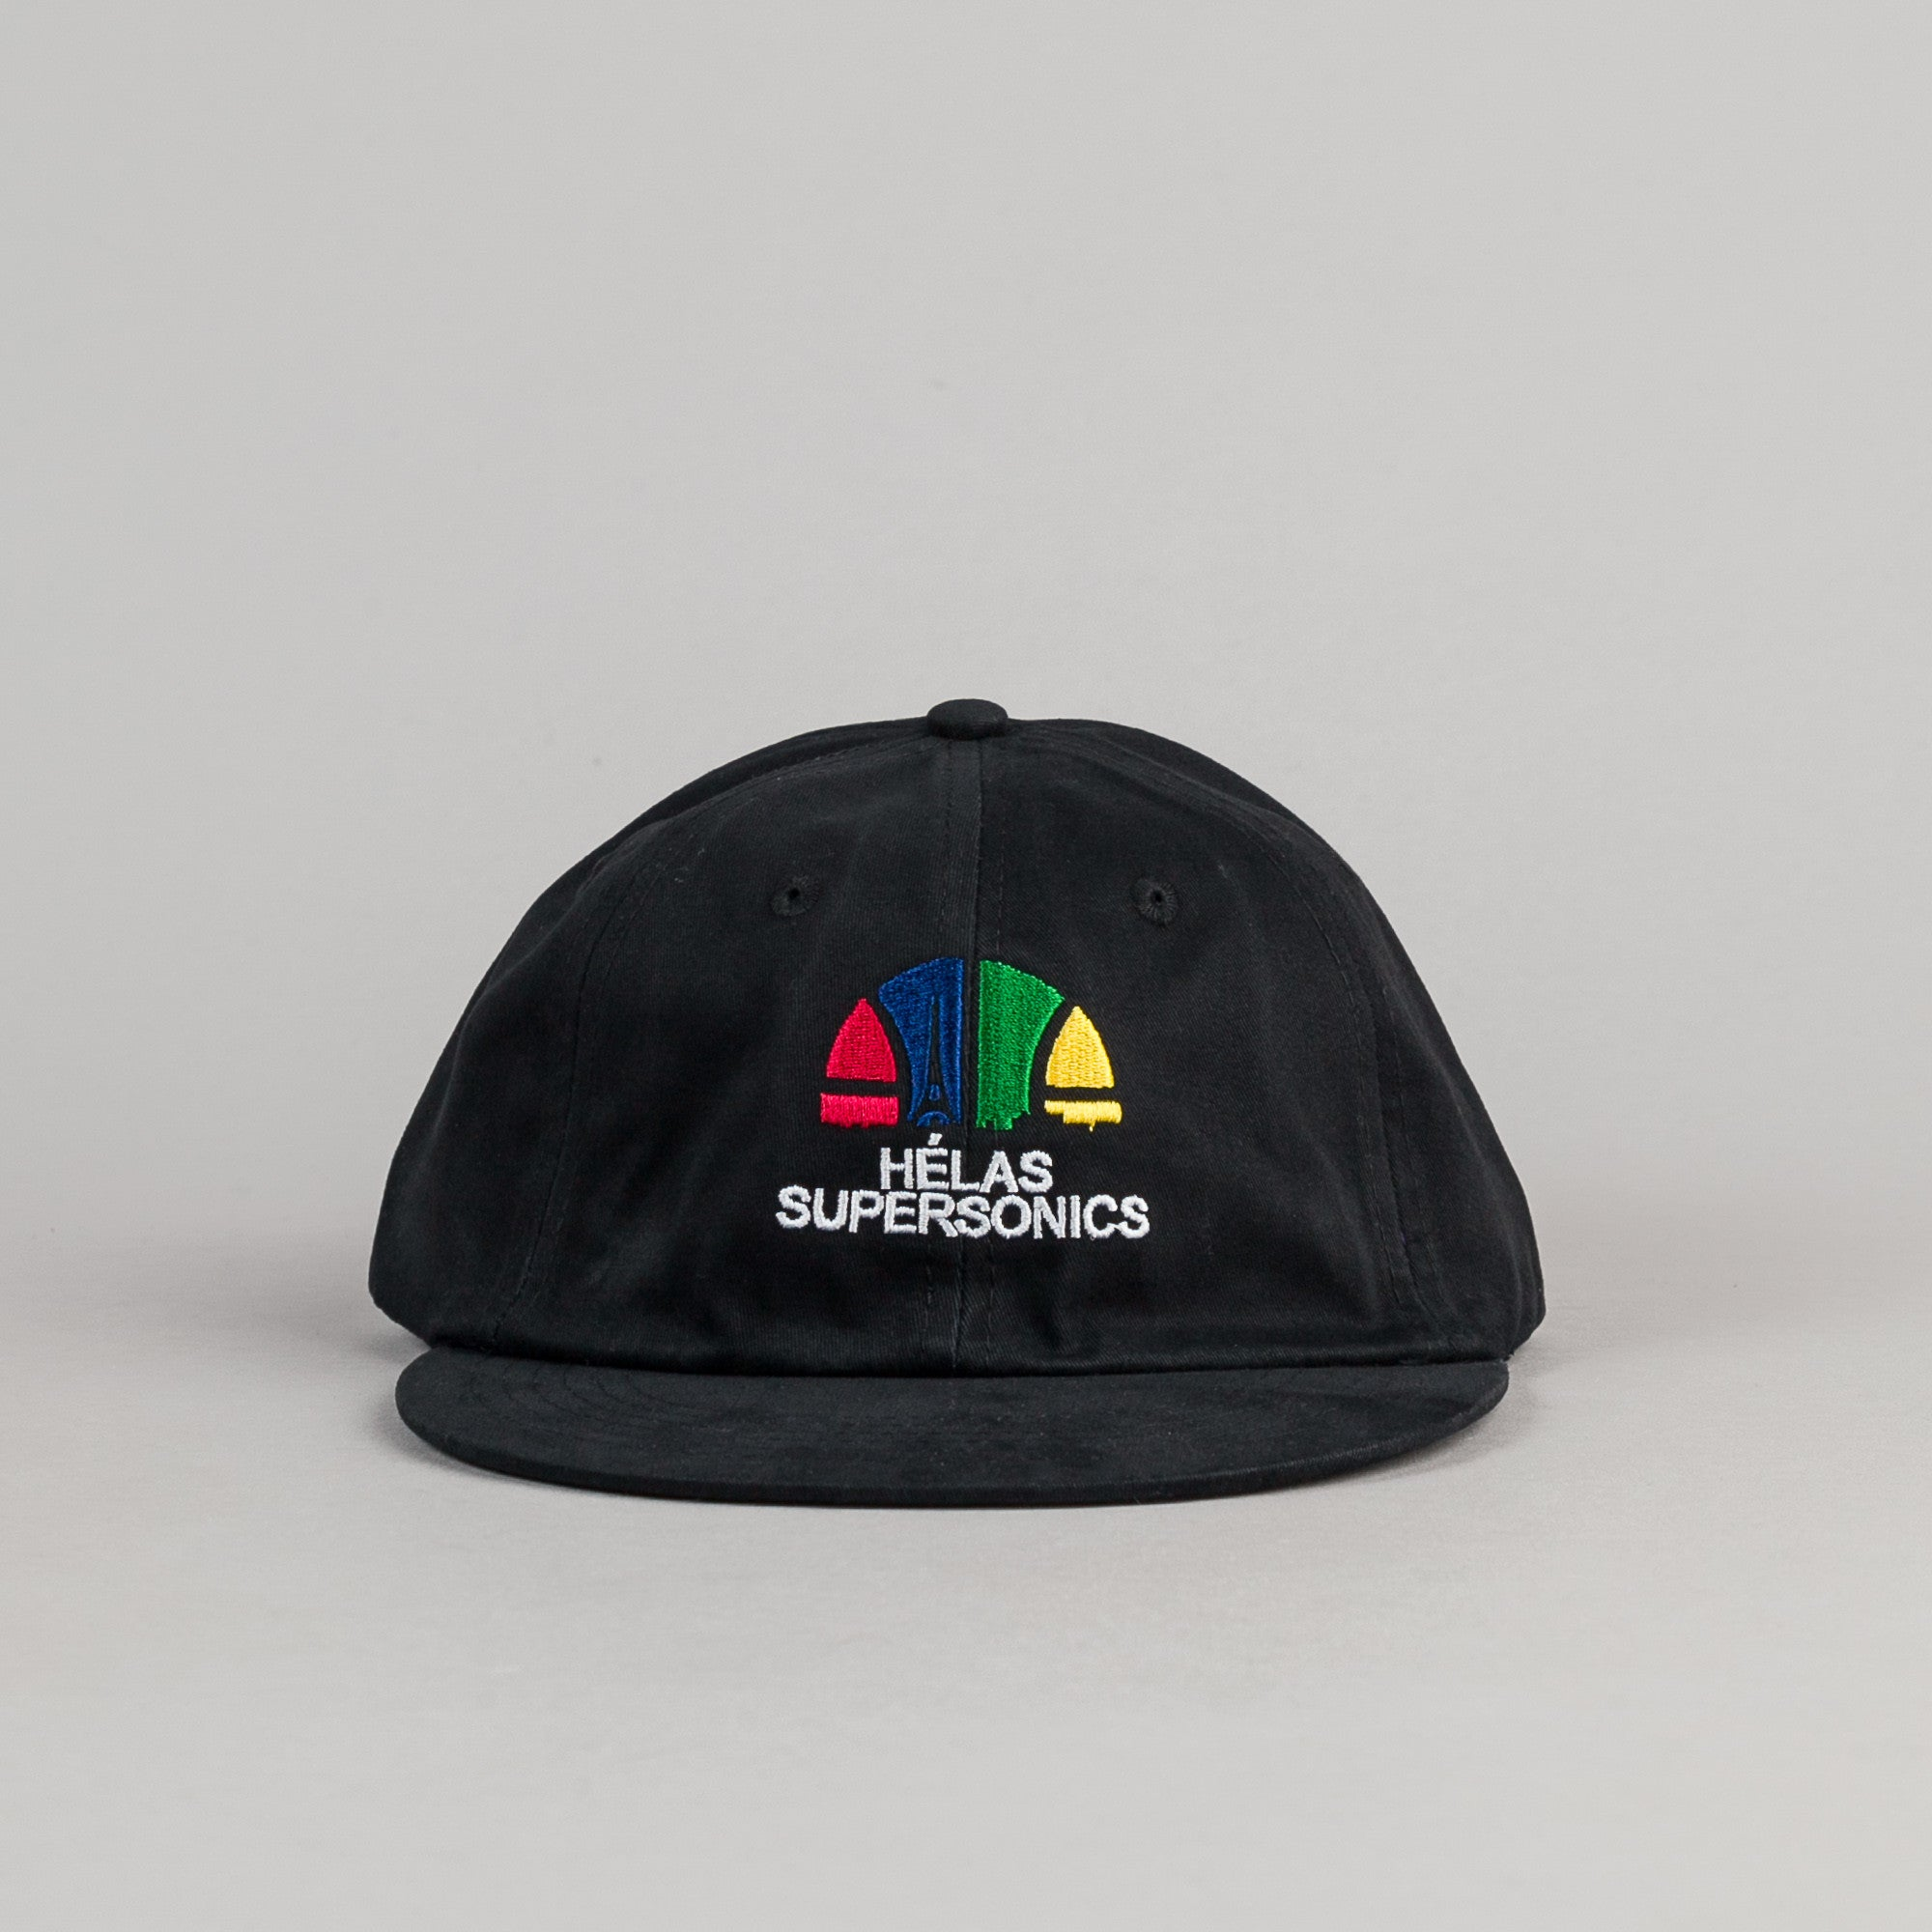 Helas Supersonics 6 Panel Cap - Black